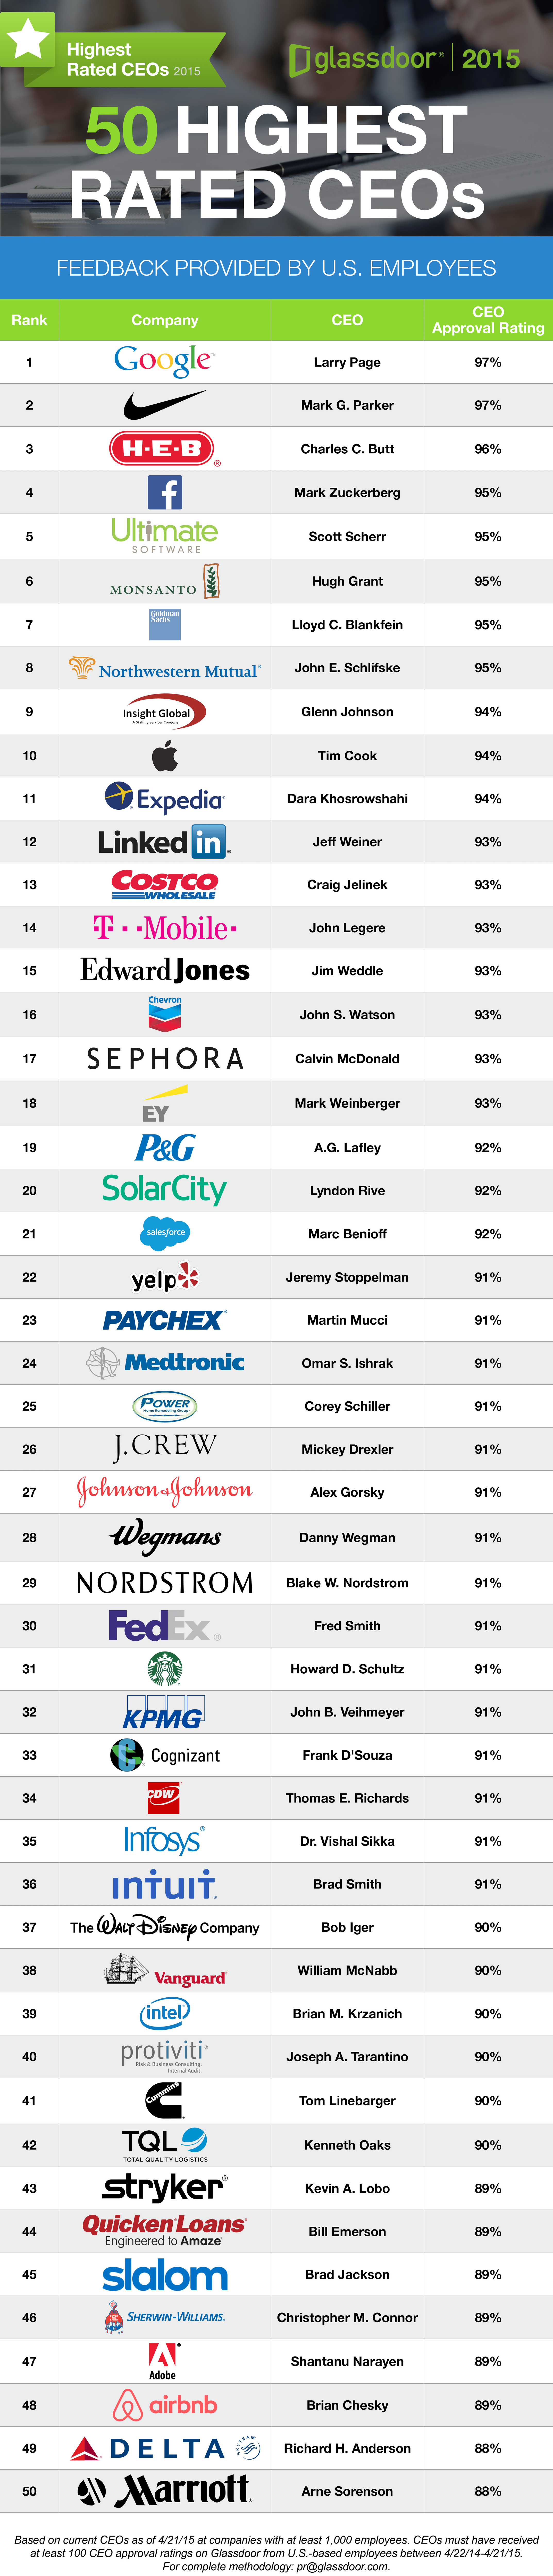 Top-50-CEOs.-Large-Companies.-U.S.4